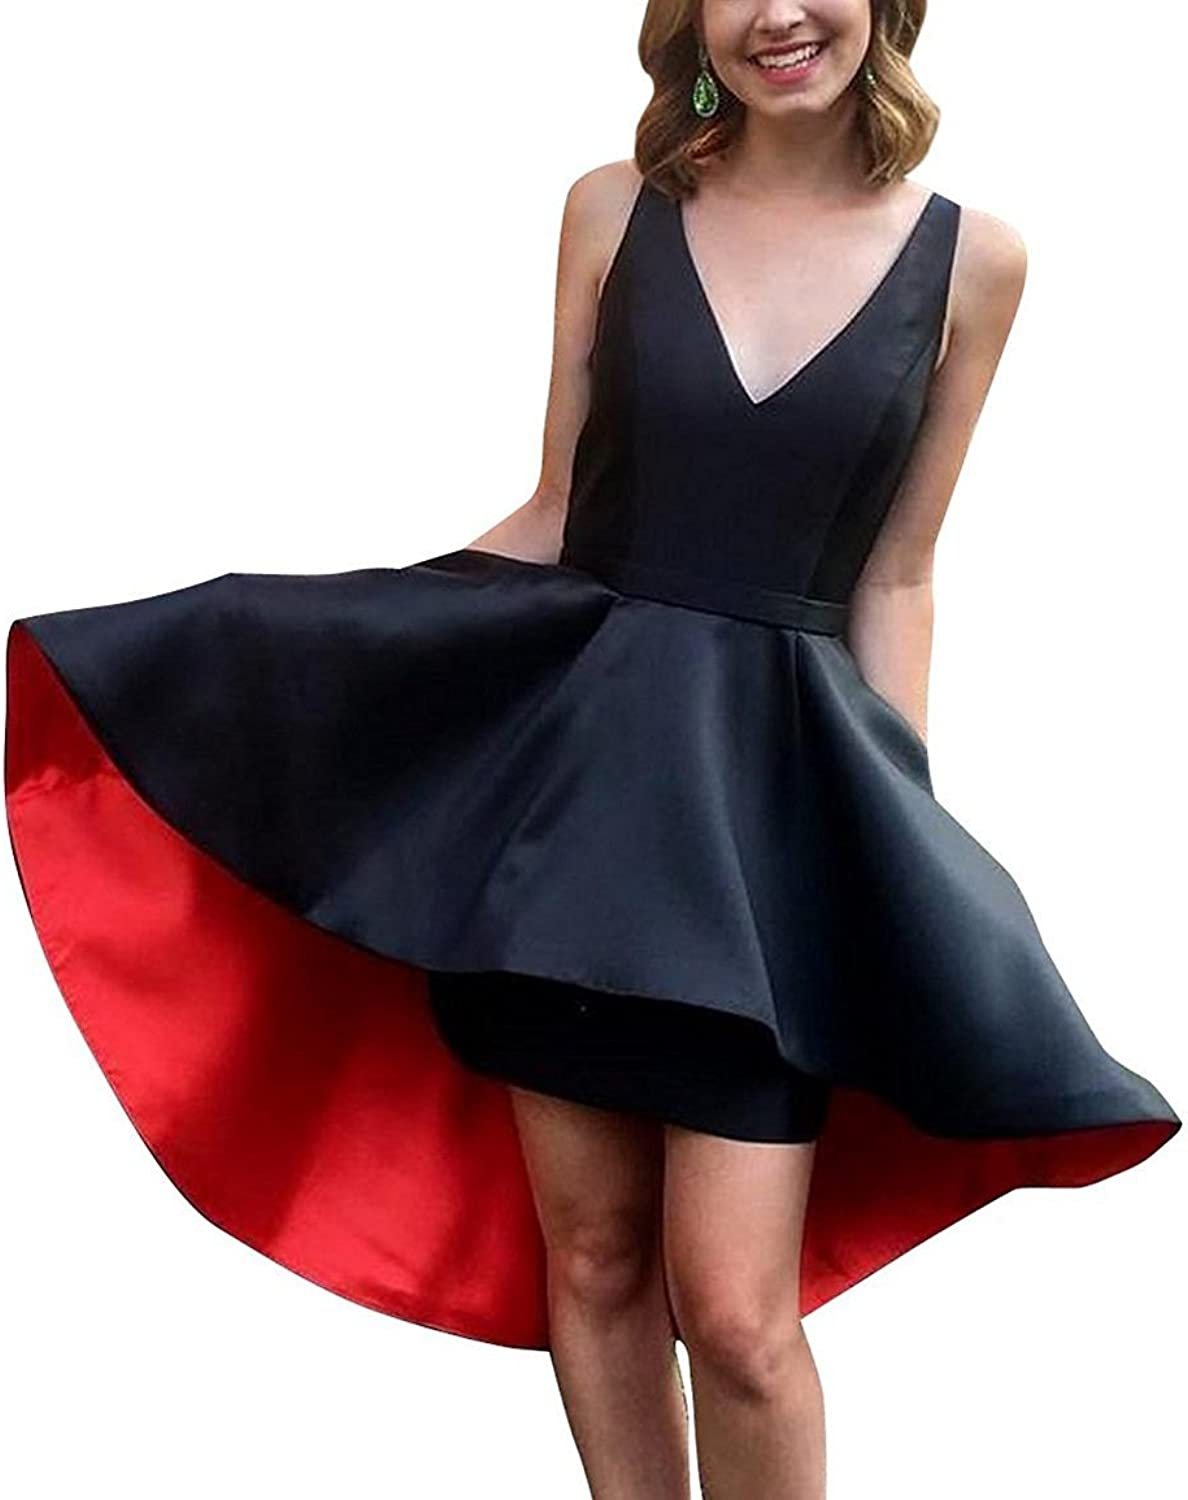 Homecoming Dress Satin VNeck Short ALine Prom Gown with Pocket Simple Prom Dress